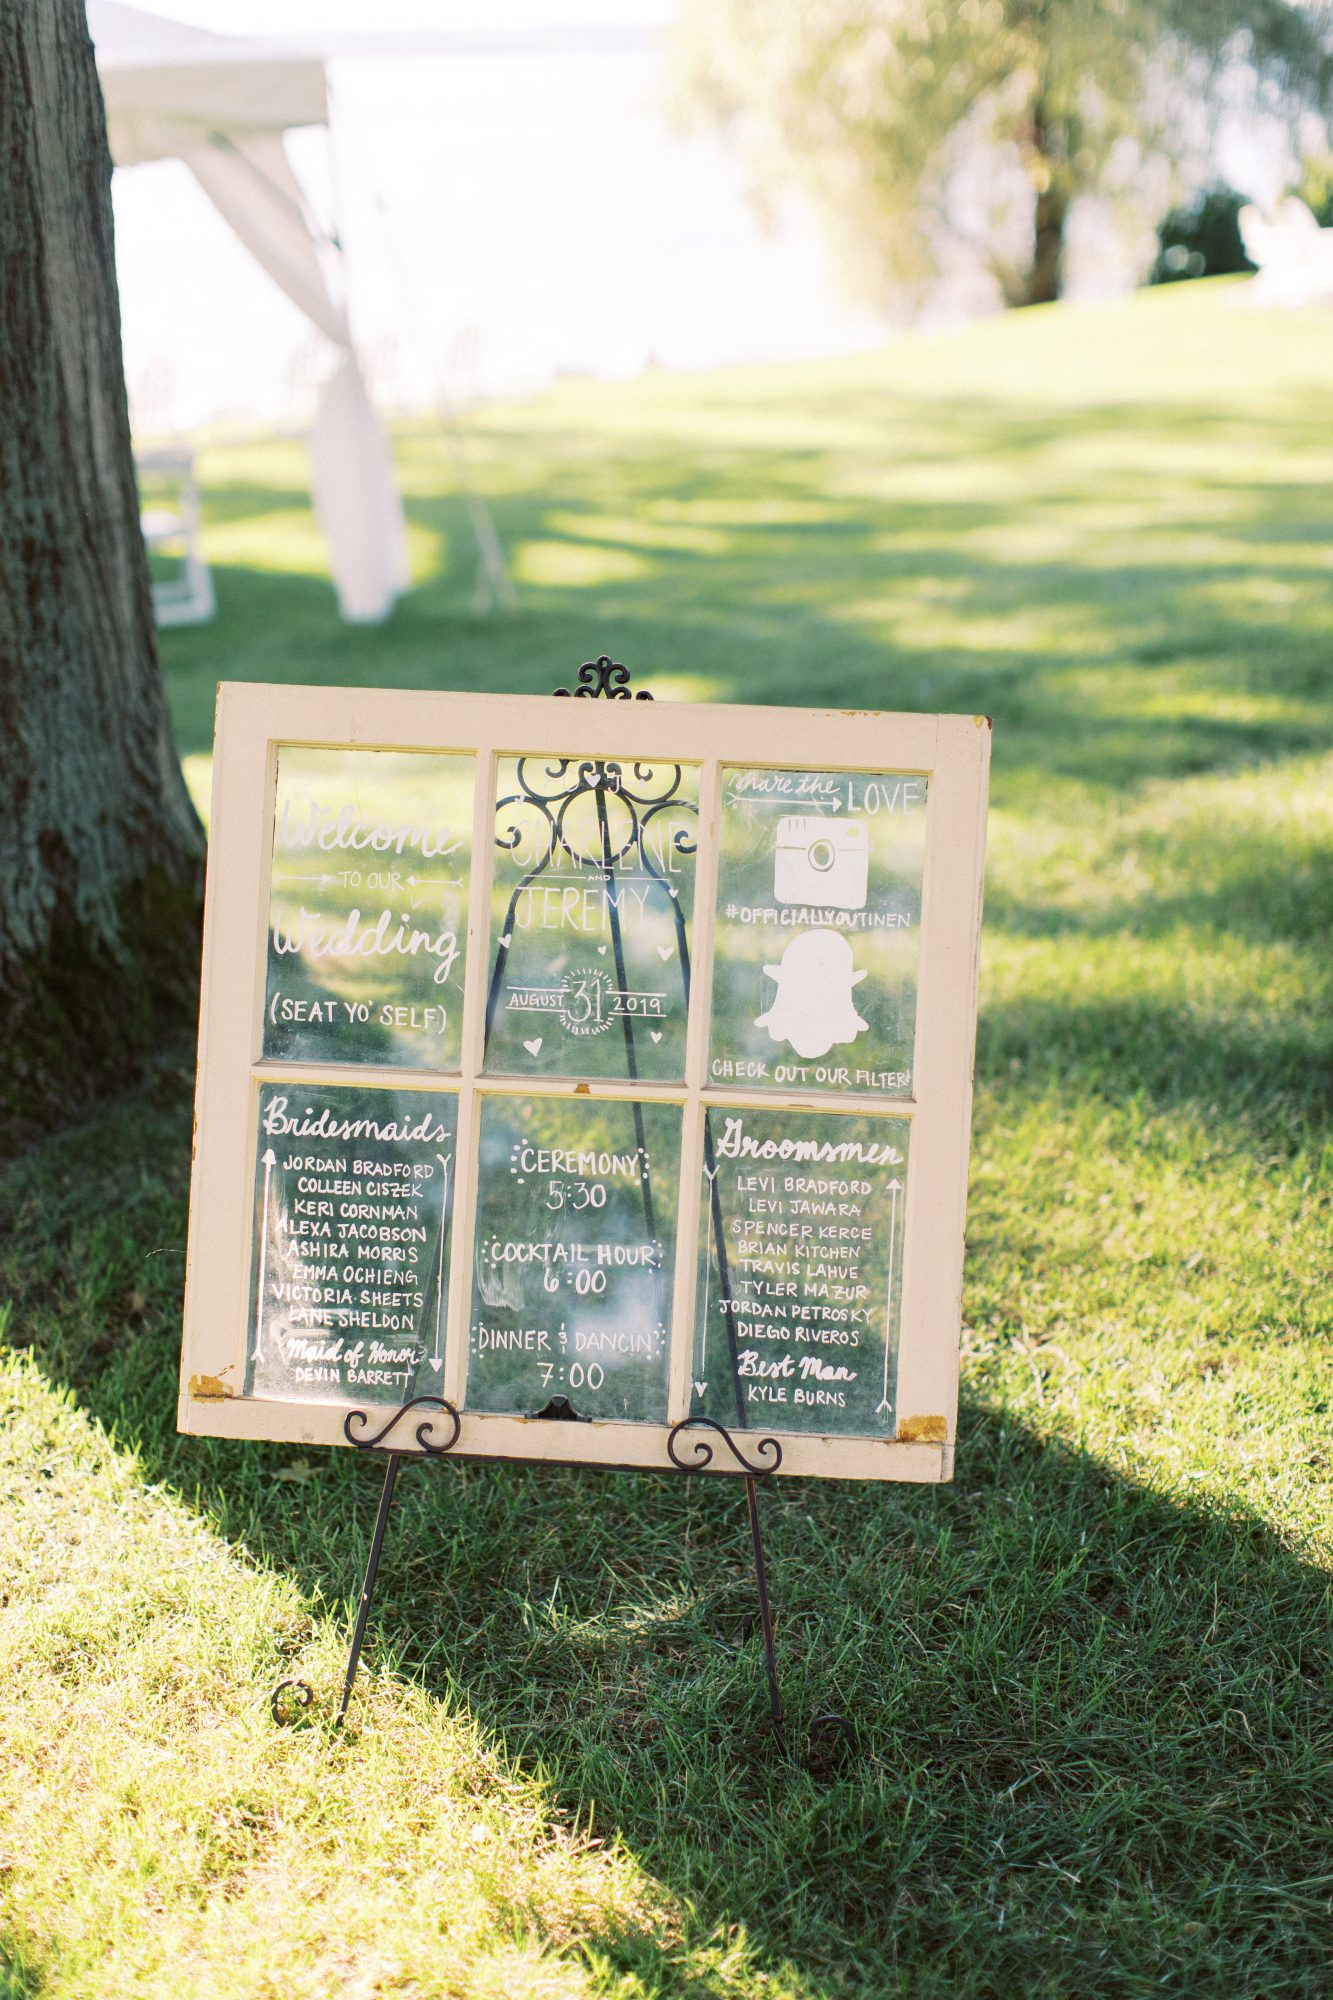 charlene jeremy wedding sign with windowpane design